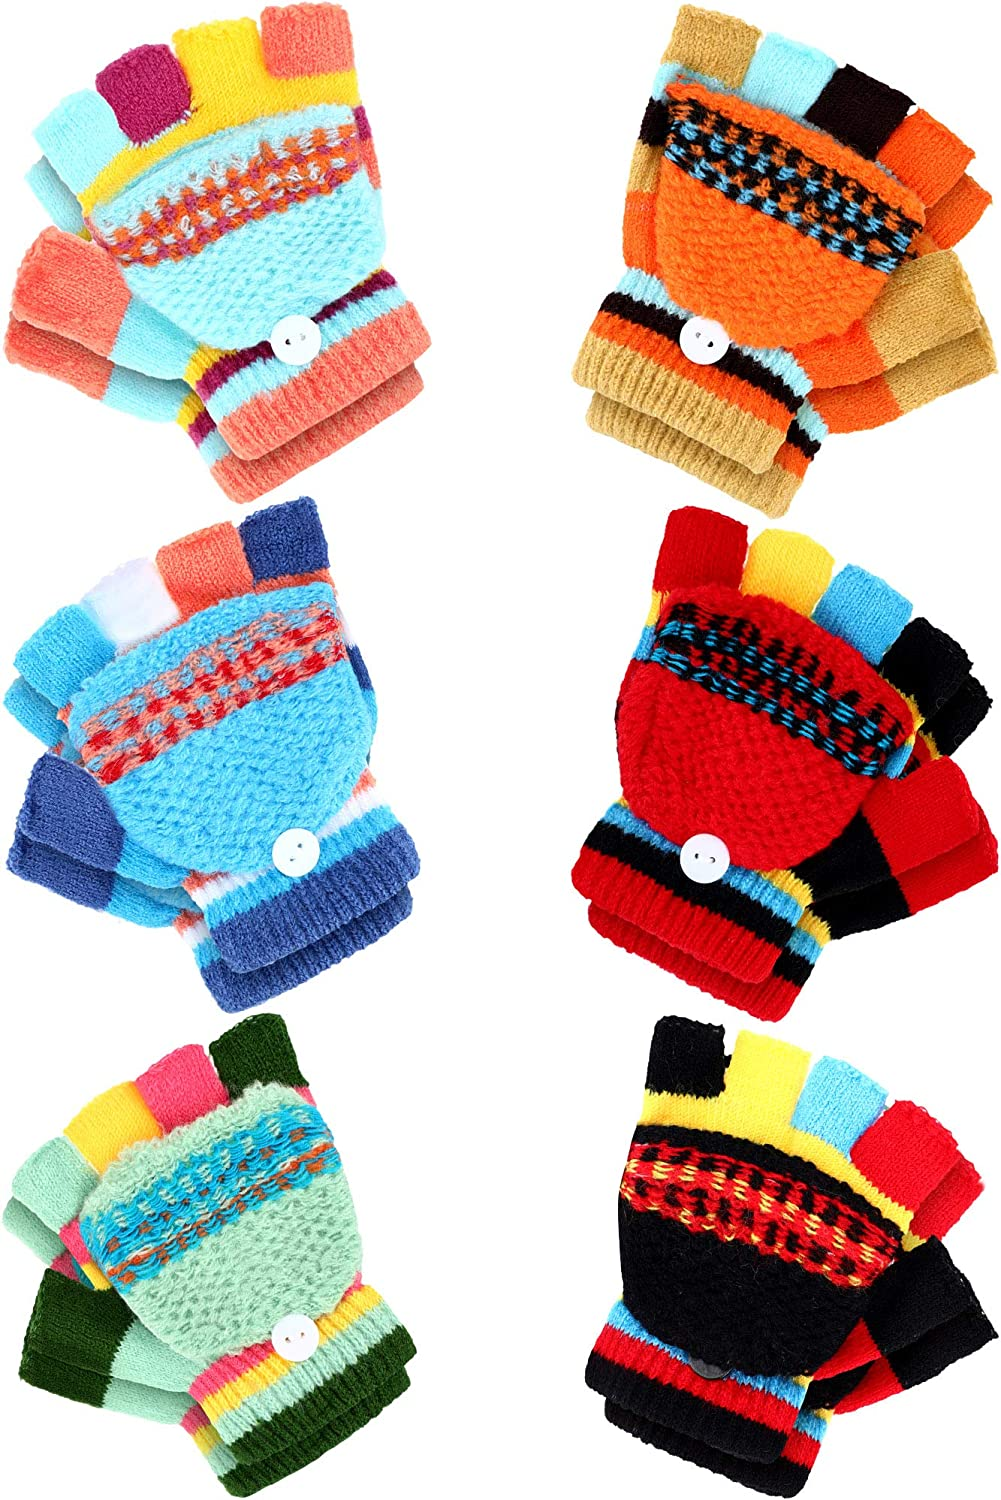 6 Pairs Convertible Fingerless Glove Knitted Half Finger Mitten with Cover for Kids